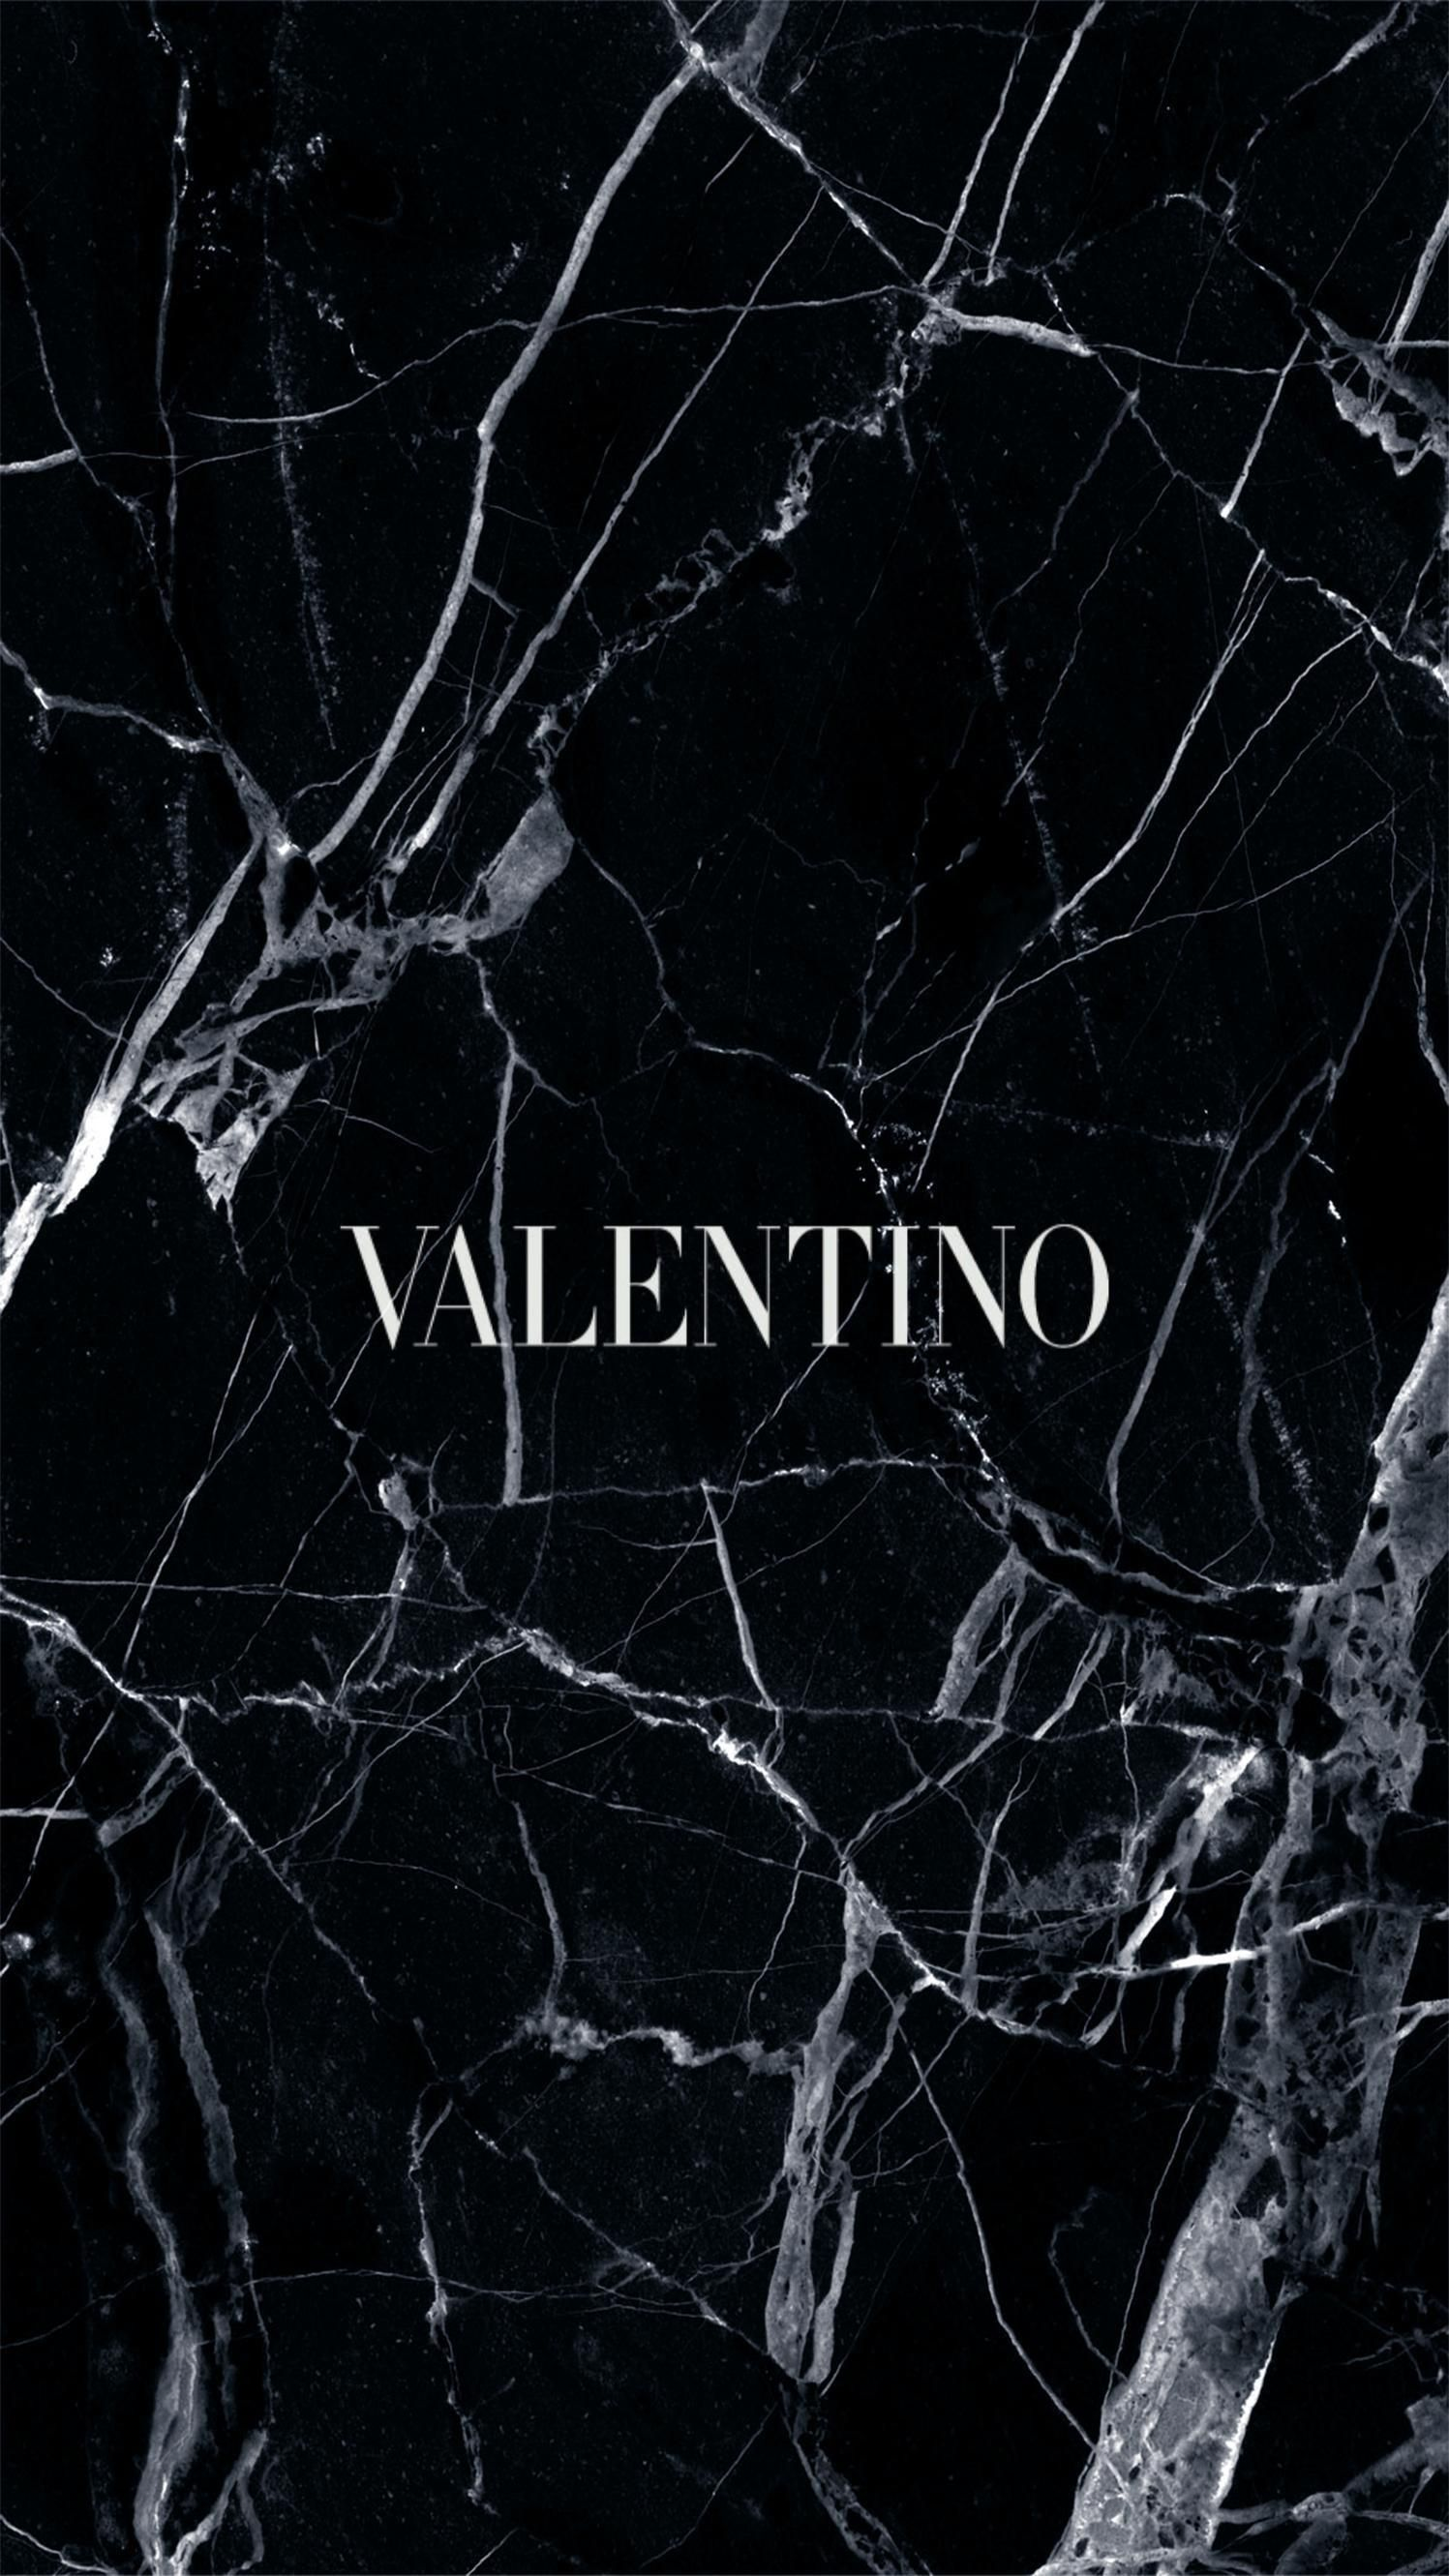 Marble Valentino Iphone Wallpapers Iphonewallpaper4k Iphonewallpaperfall Iphonew Iphone Wallpaper Girly Louis Vuitton Iphone Wallpaper Iphone Wallpaper